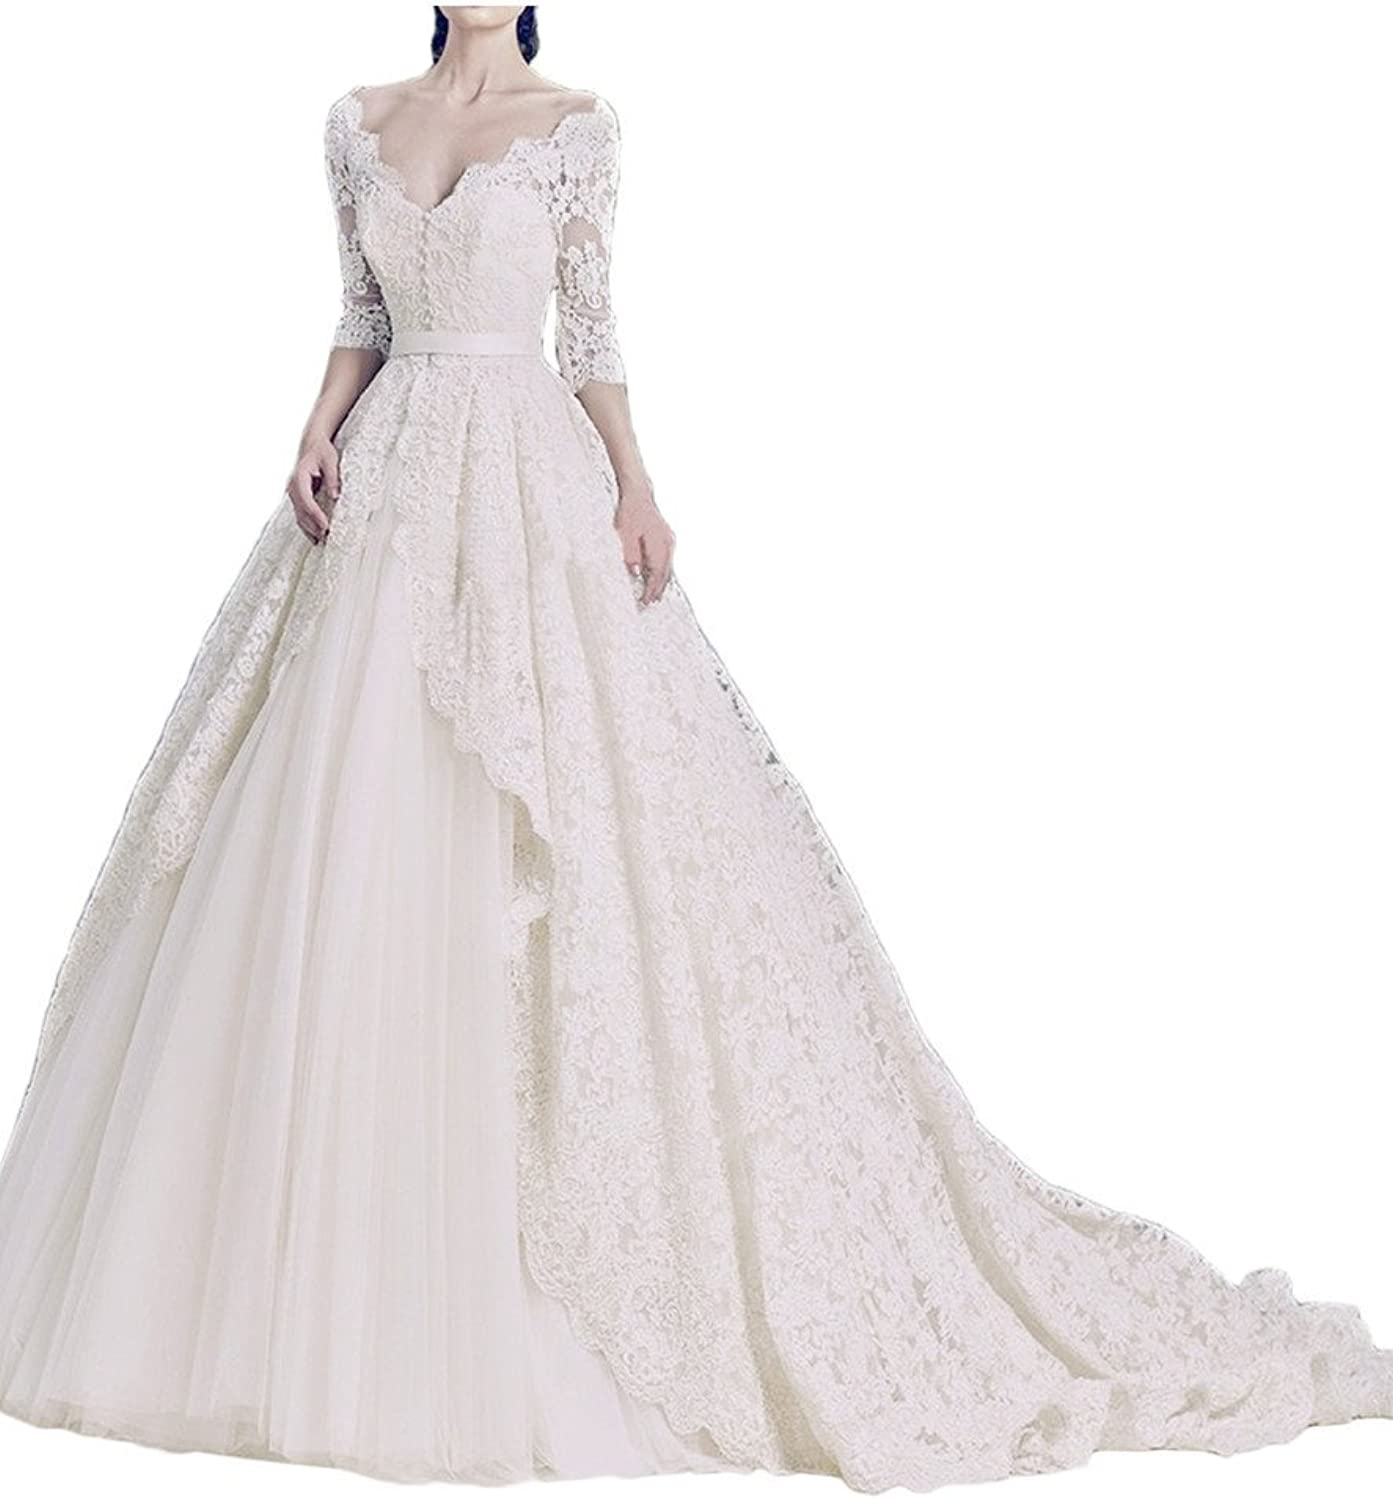 MILANO BRIDE Gorgeous Bridal Wedding Dress Lace Vneck 1 2 Sleeves Ball Gown